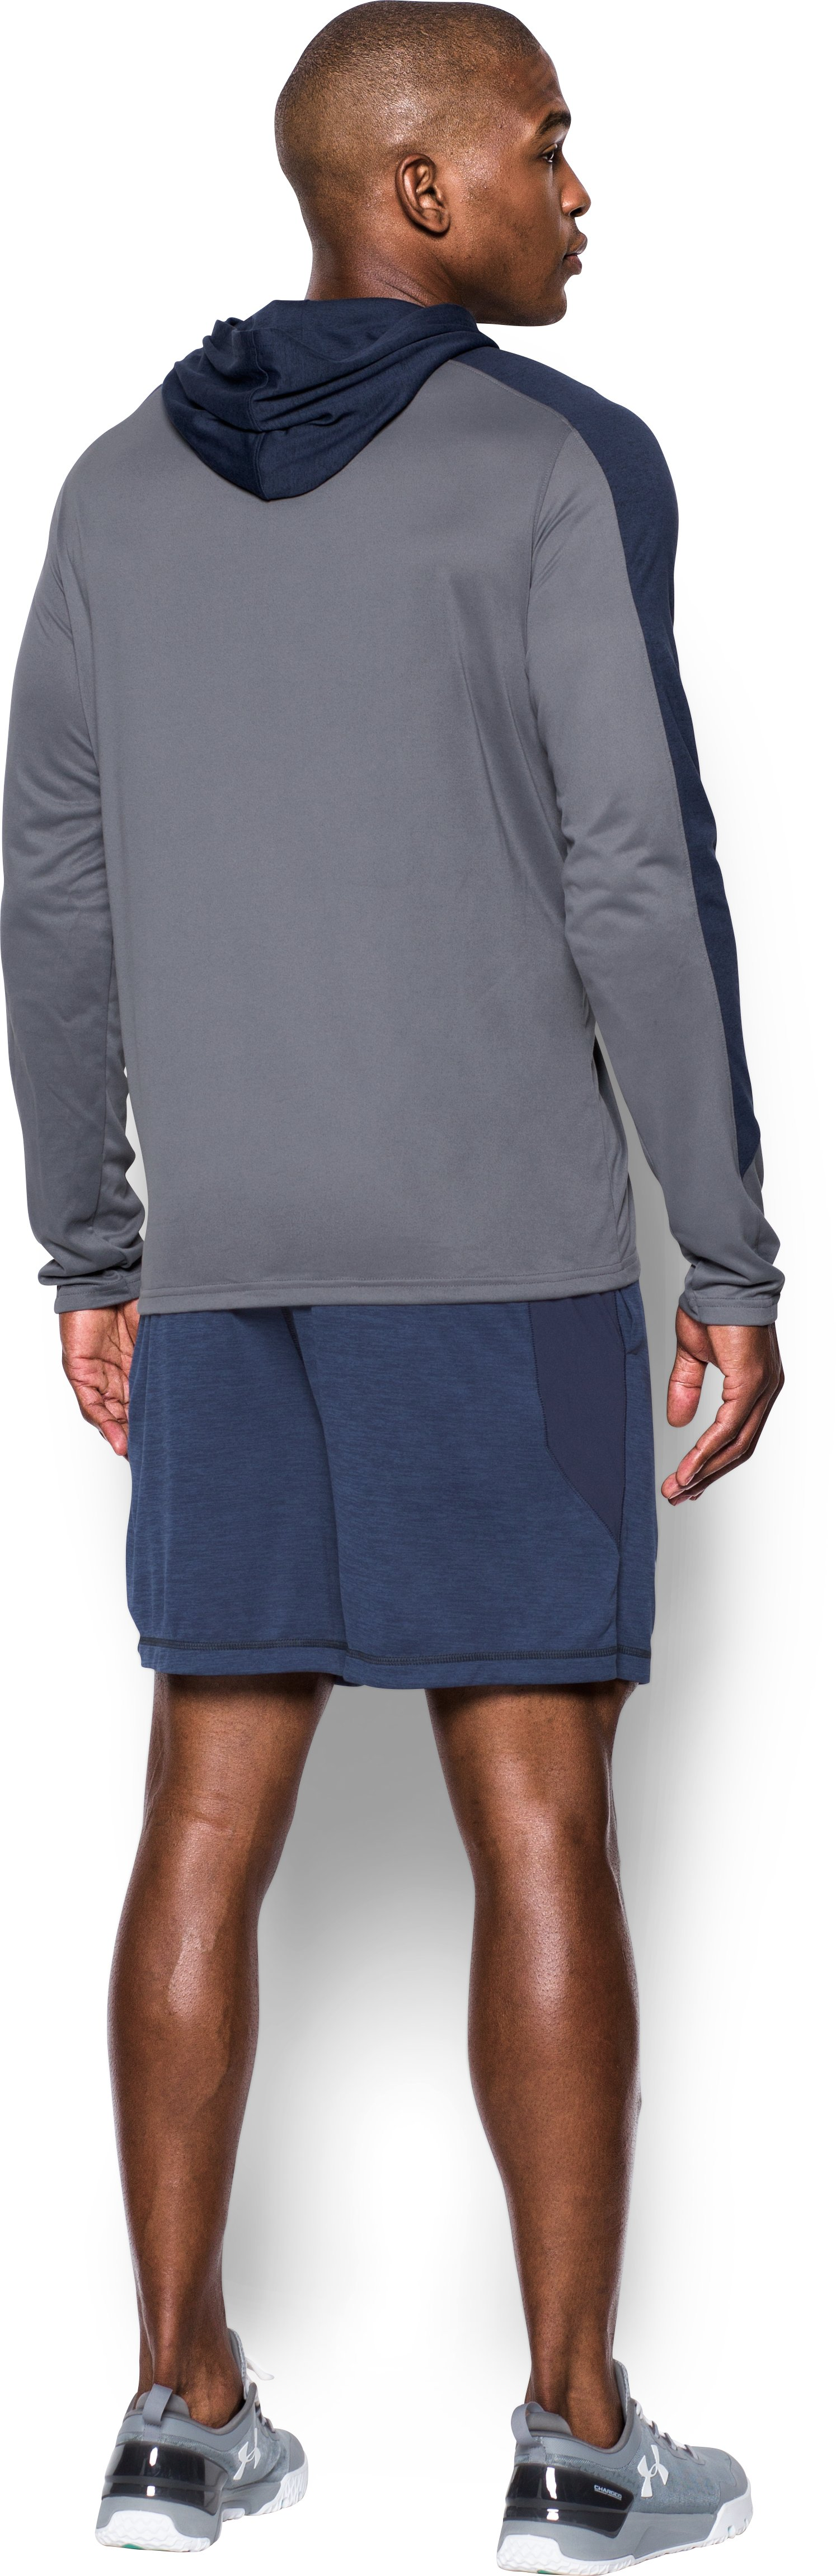 Men's Notre Dame UA Tech™ Hoodie, True Gray Heather, Back